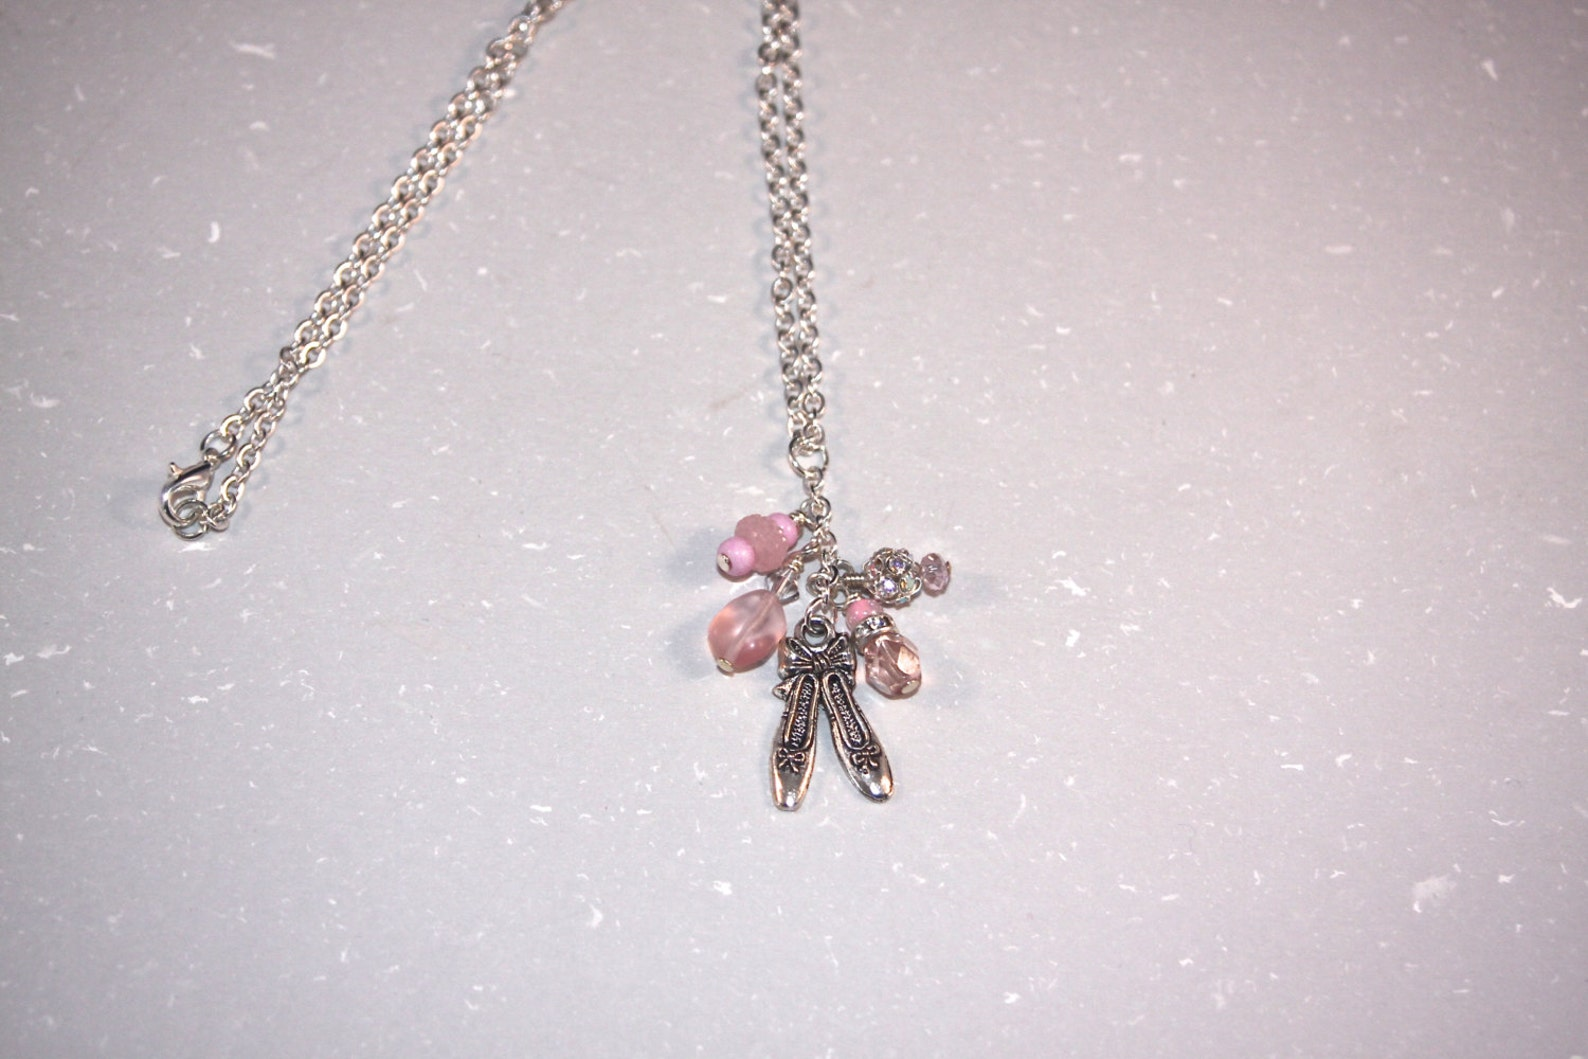 soft pink ballet slipper dangle charm necklace wonderful dancer gift.